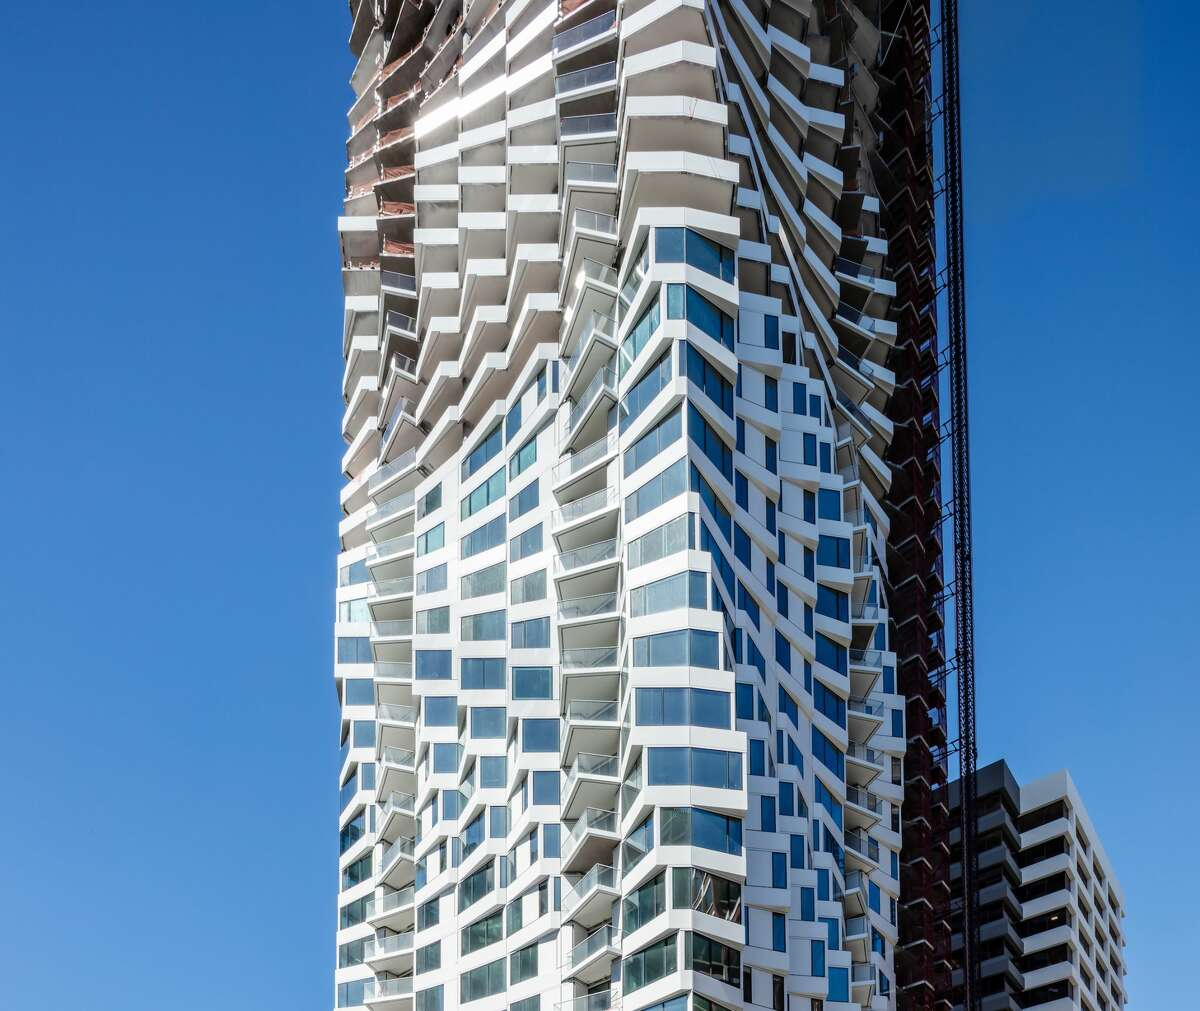 The 400-foot-tall MIRA is slated to open in late 2019 with 392 new luxury residences.